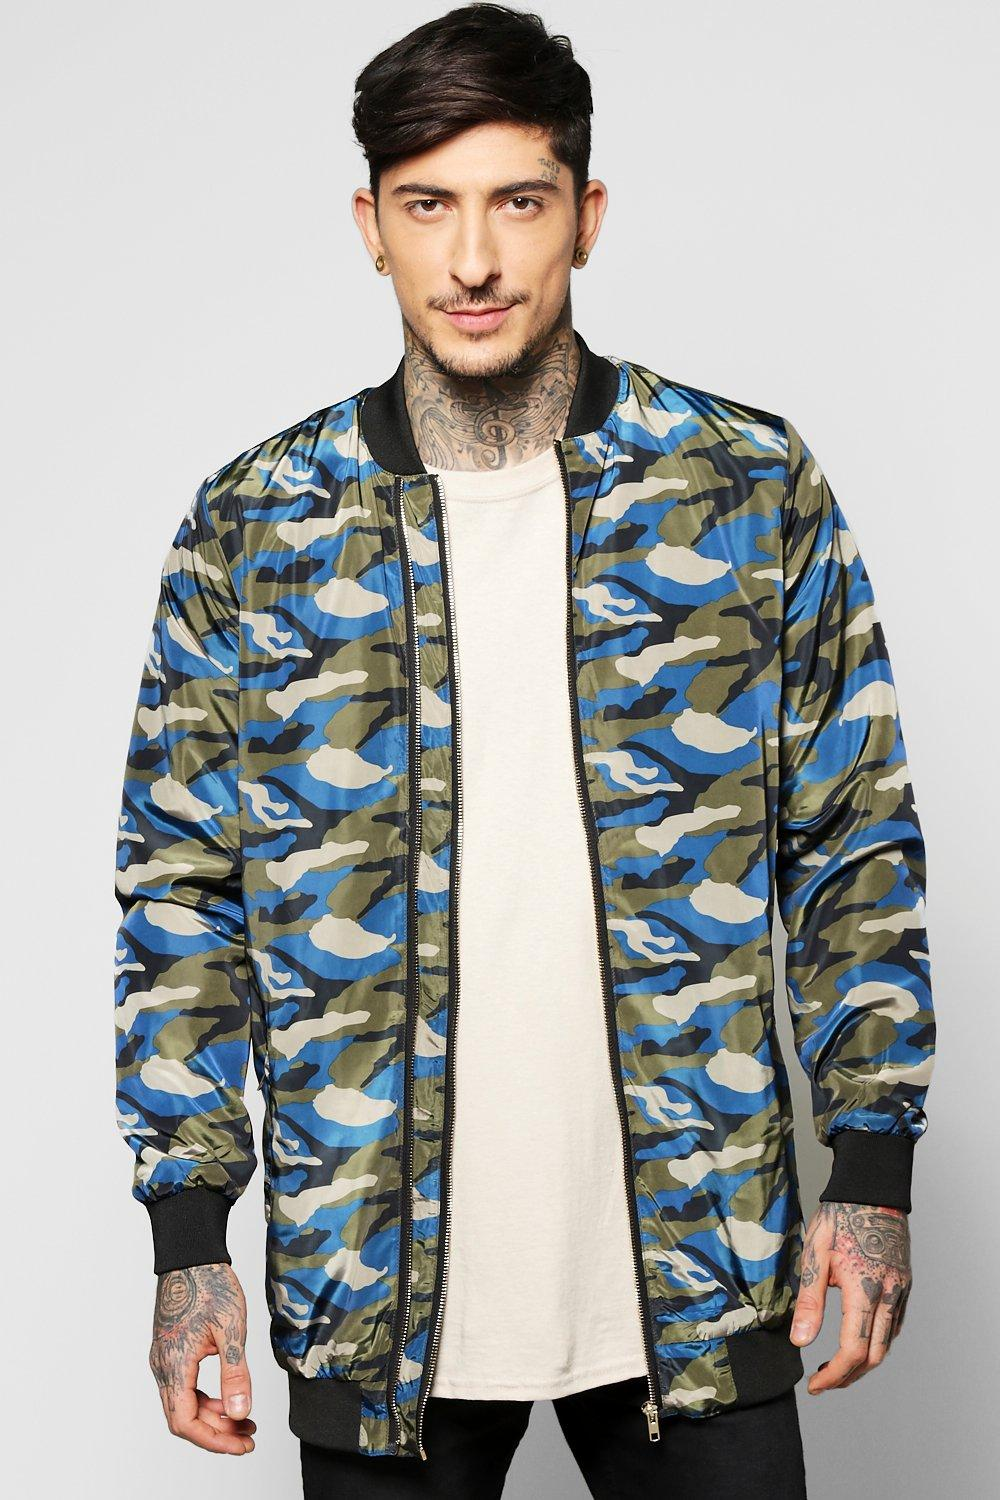 Longline All Over Camo Multi Zip Jacket